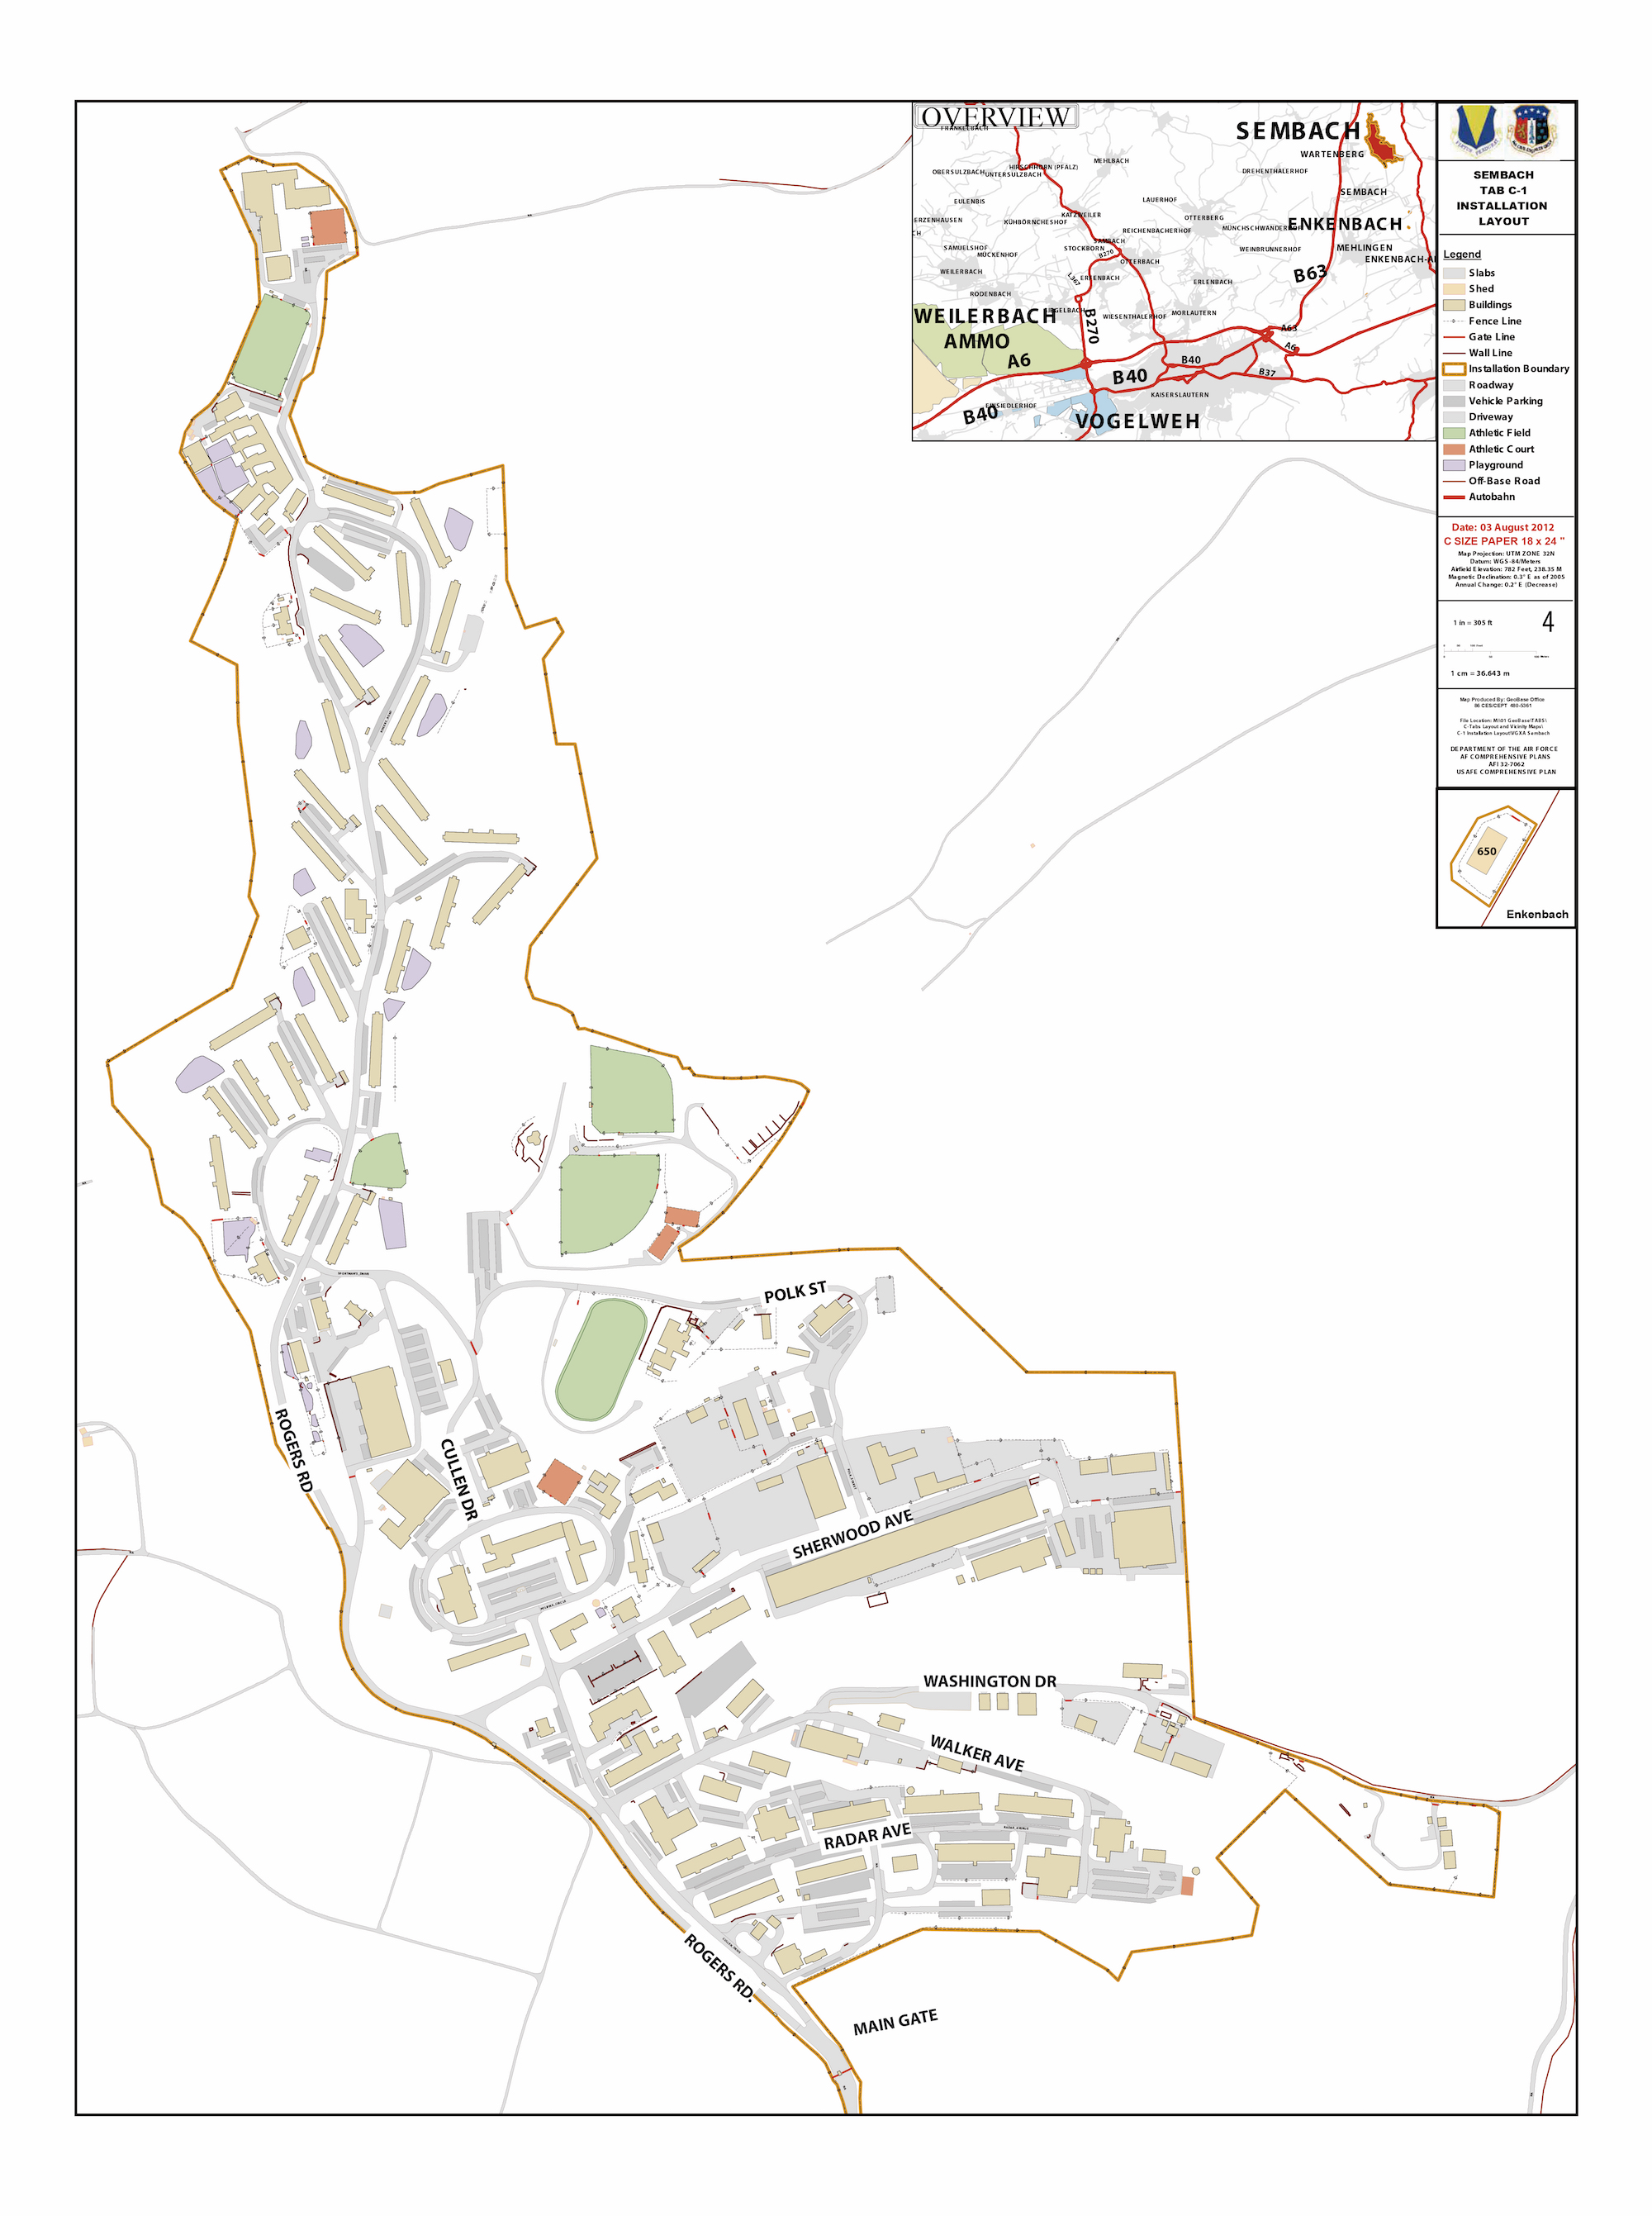 City and Regional Maps - The Find-It Guide - Business and Military ...